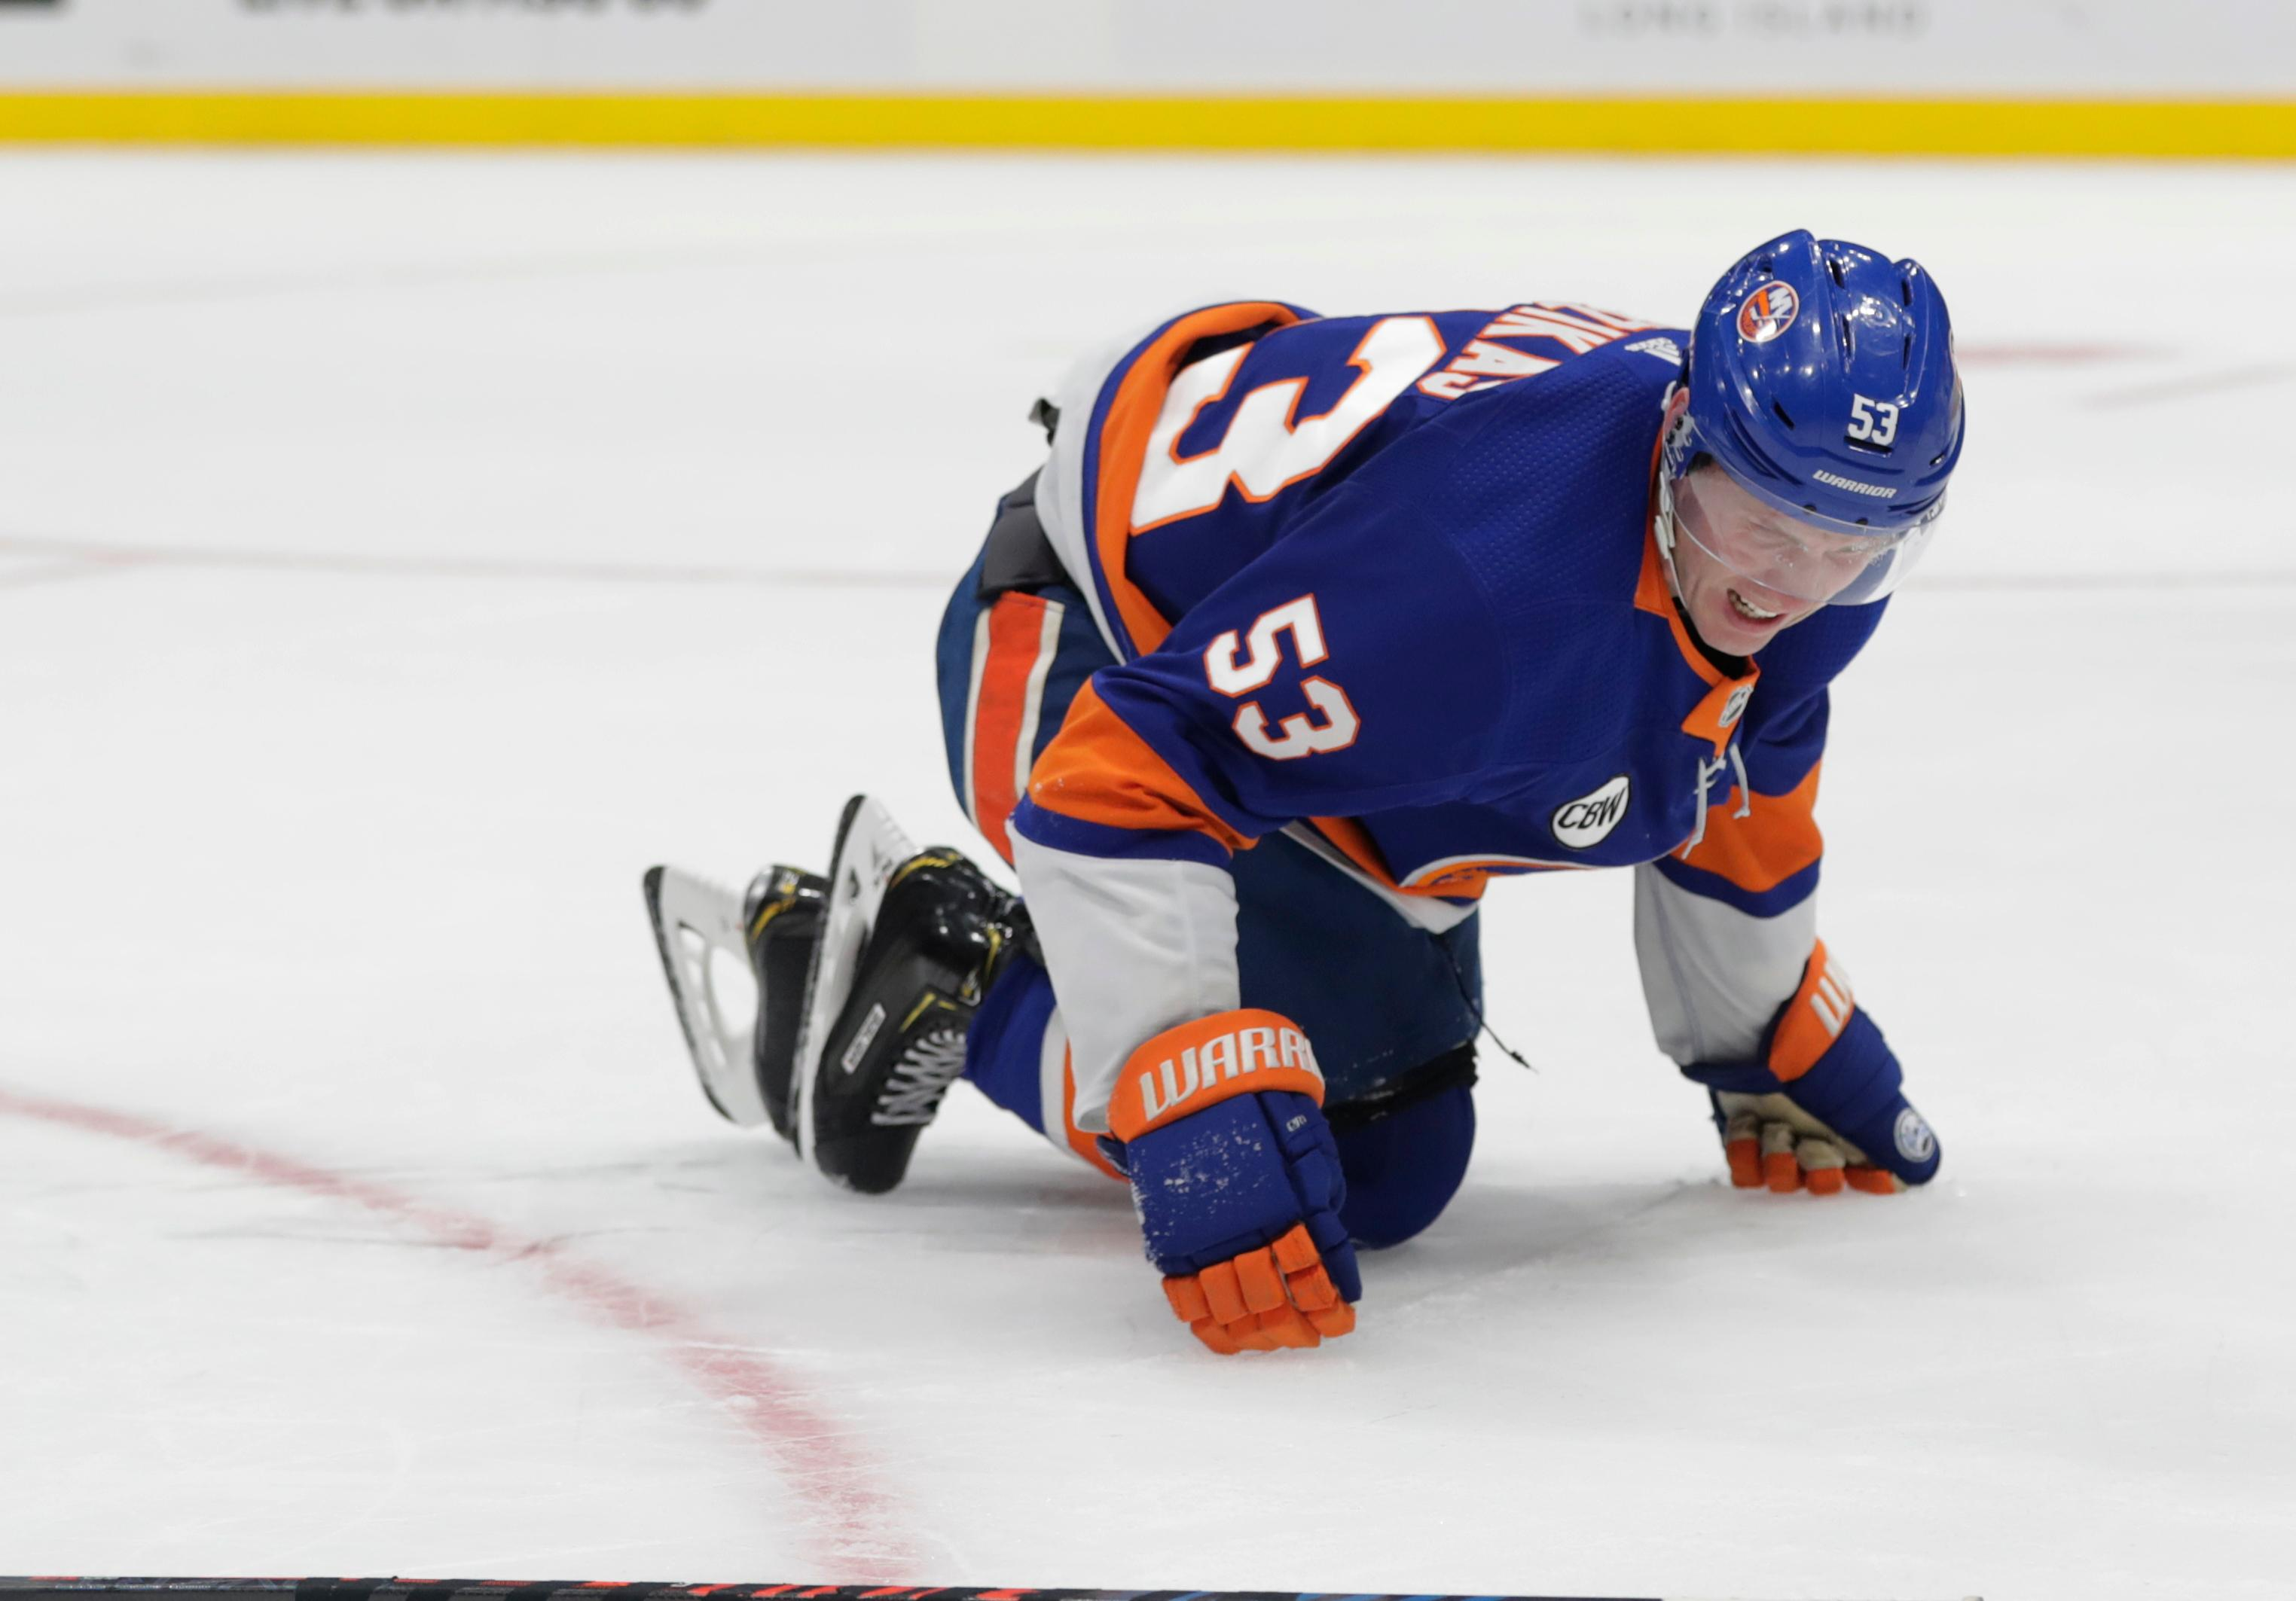 New York Islanders' Casey Cizikas (53) reacts after being hurt during the first period of an NHL hockey game against the Carolina Hurricanes Tuesday, Jan. 8, 2019, in New York. (AP Photo/Frank Franklin II)